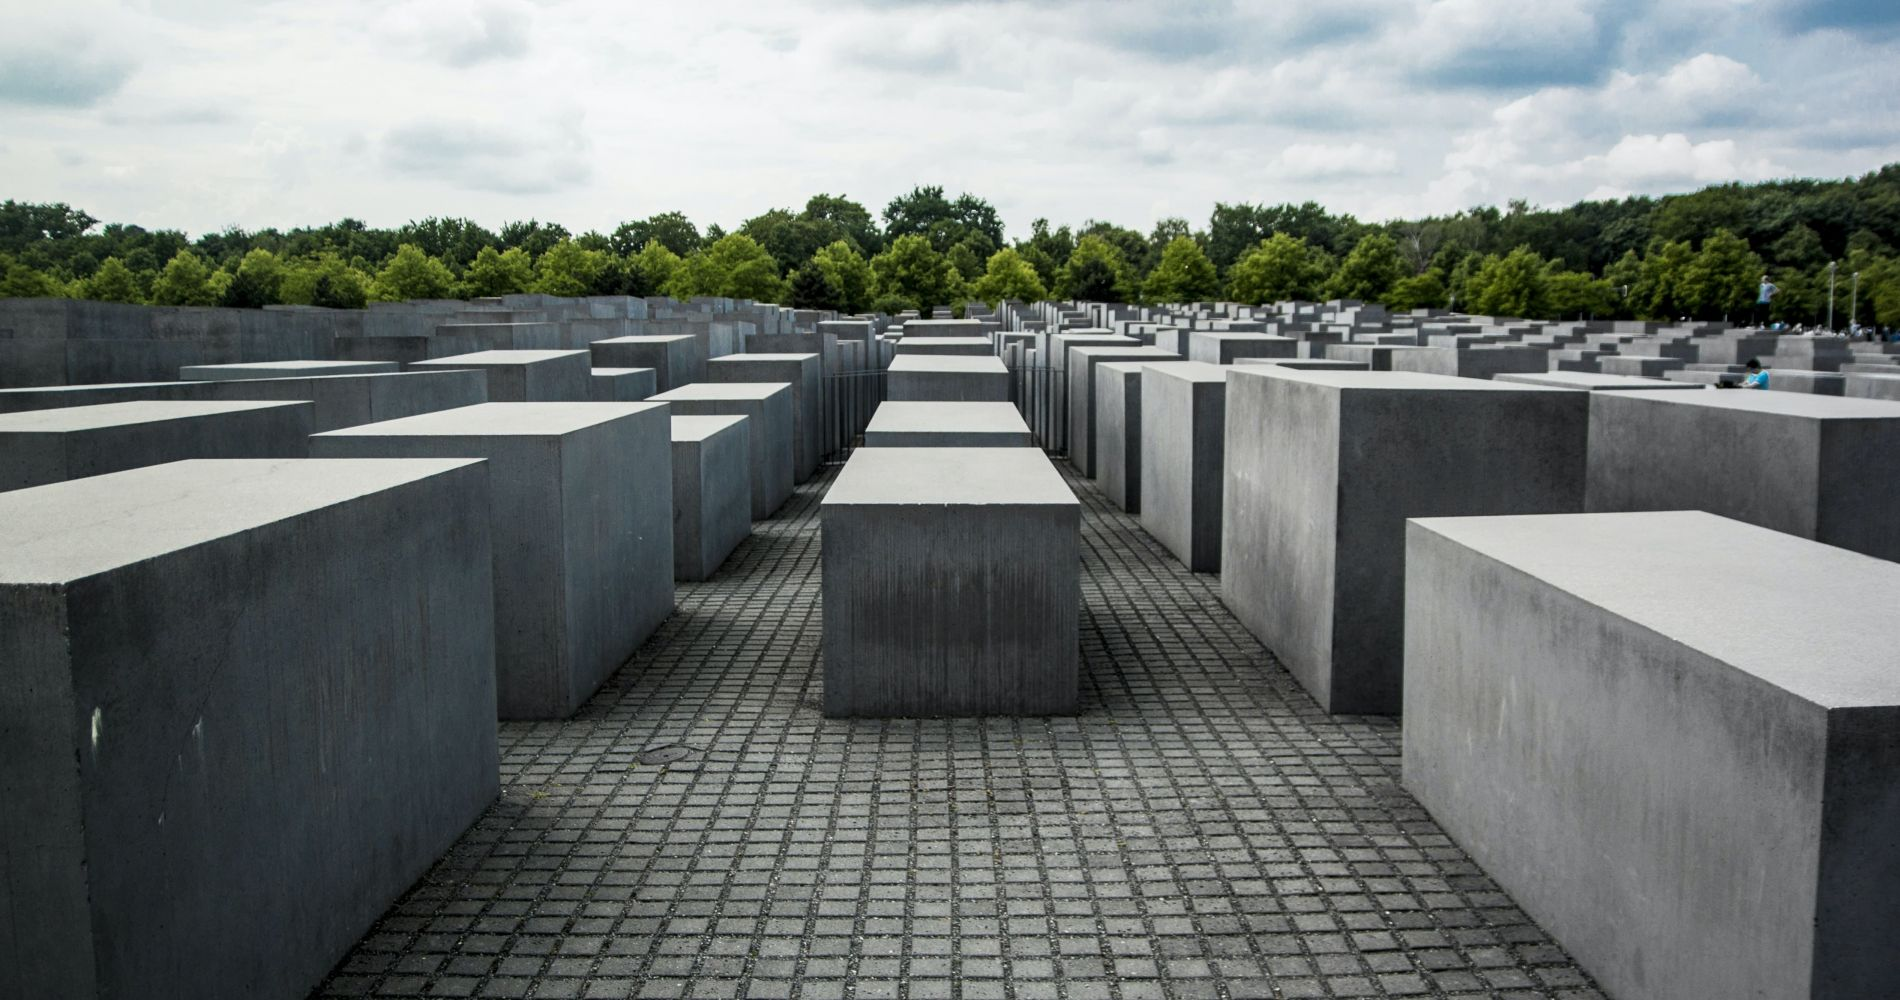 Visit the Memorial to the Murdered Jews of Europe